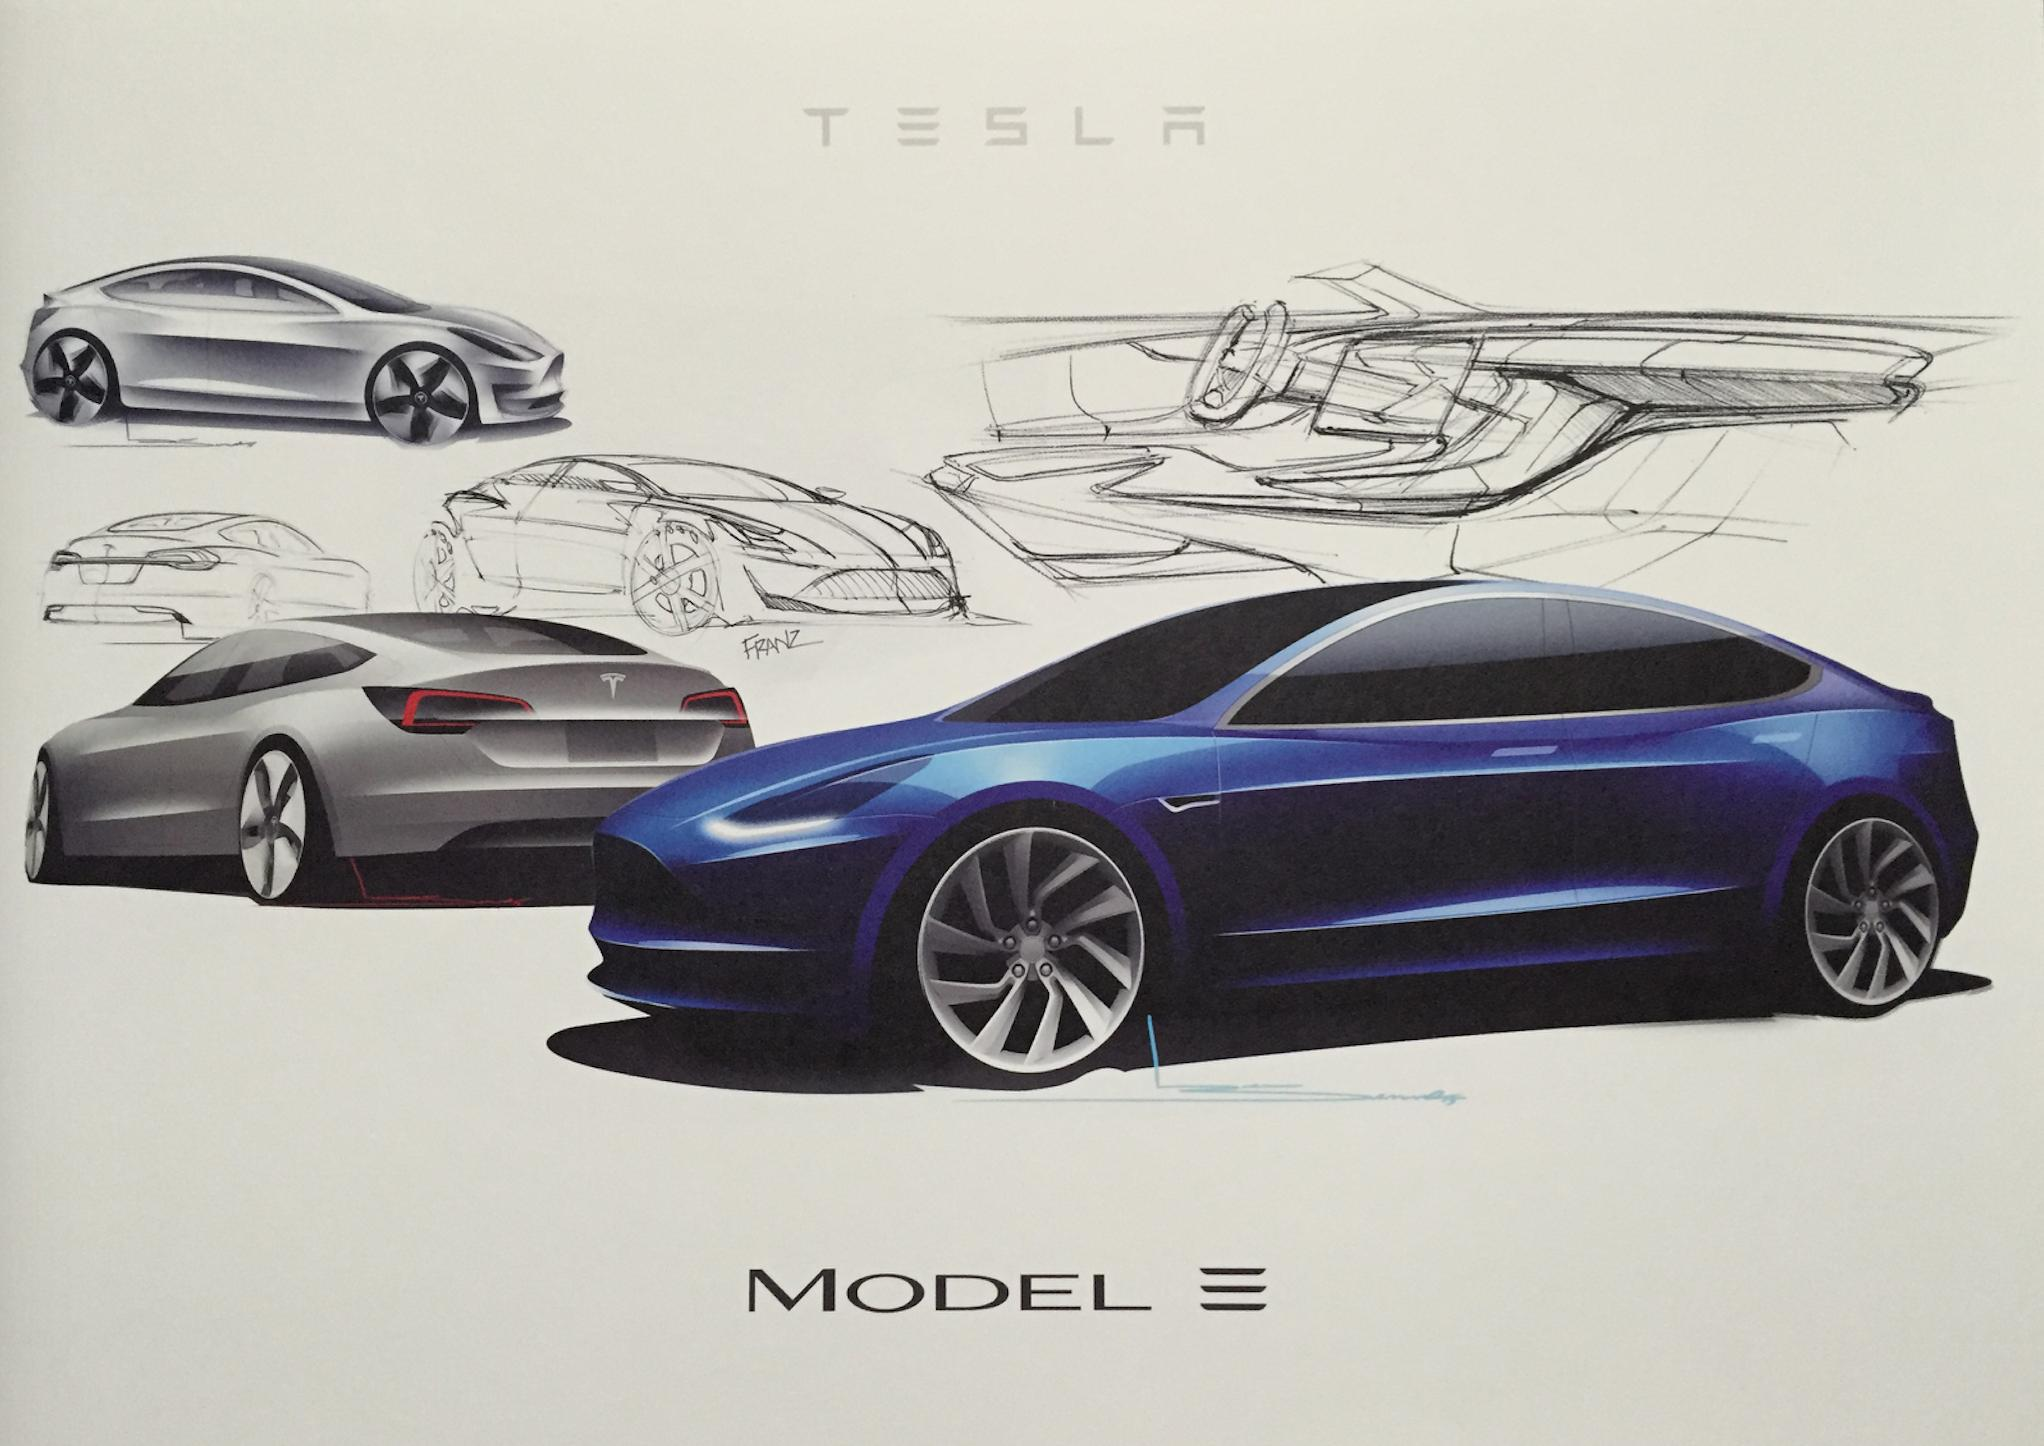 Back Of The Napkin A New Look At The Porsche Mission E Concept as well Faraday Future Finally Unveils Tesla Killer Self Driving FF91 0 60mph Just 2 39 SECONDS besides Tesla Model 3 4022439 together with 100540538 2016 Volkswagen Touareg 4 Door Tdi Executive Side Exterior View together with Tesla Model 3 Supercharging Harris Ranch Sf La. on tesla model side view